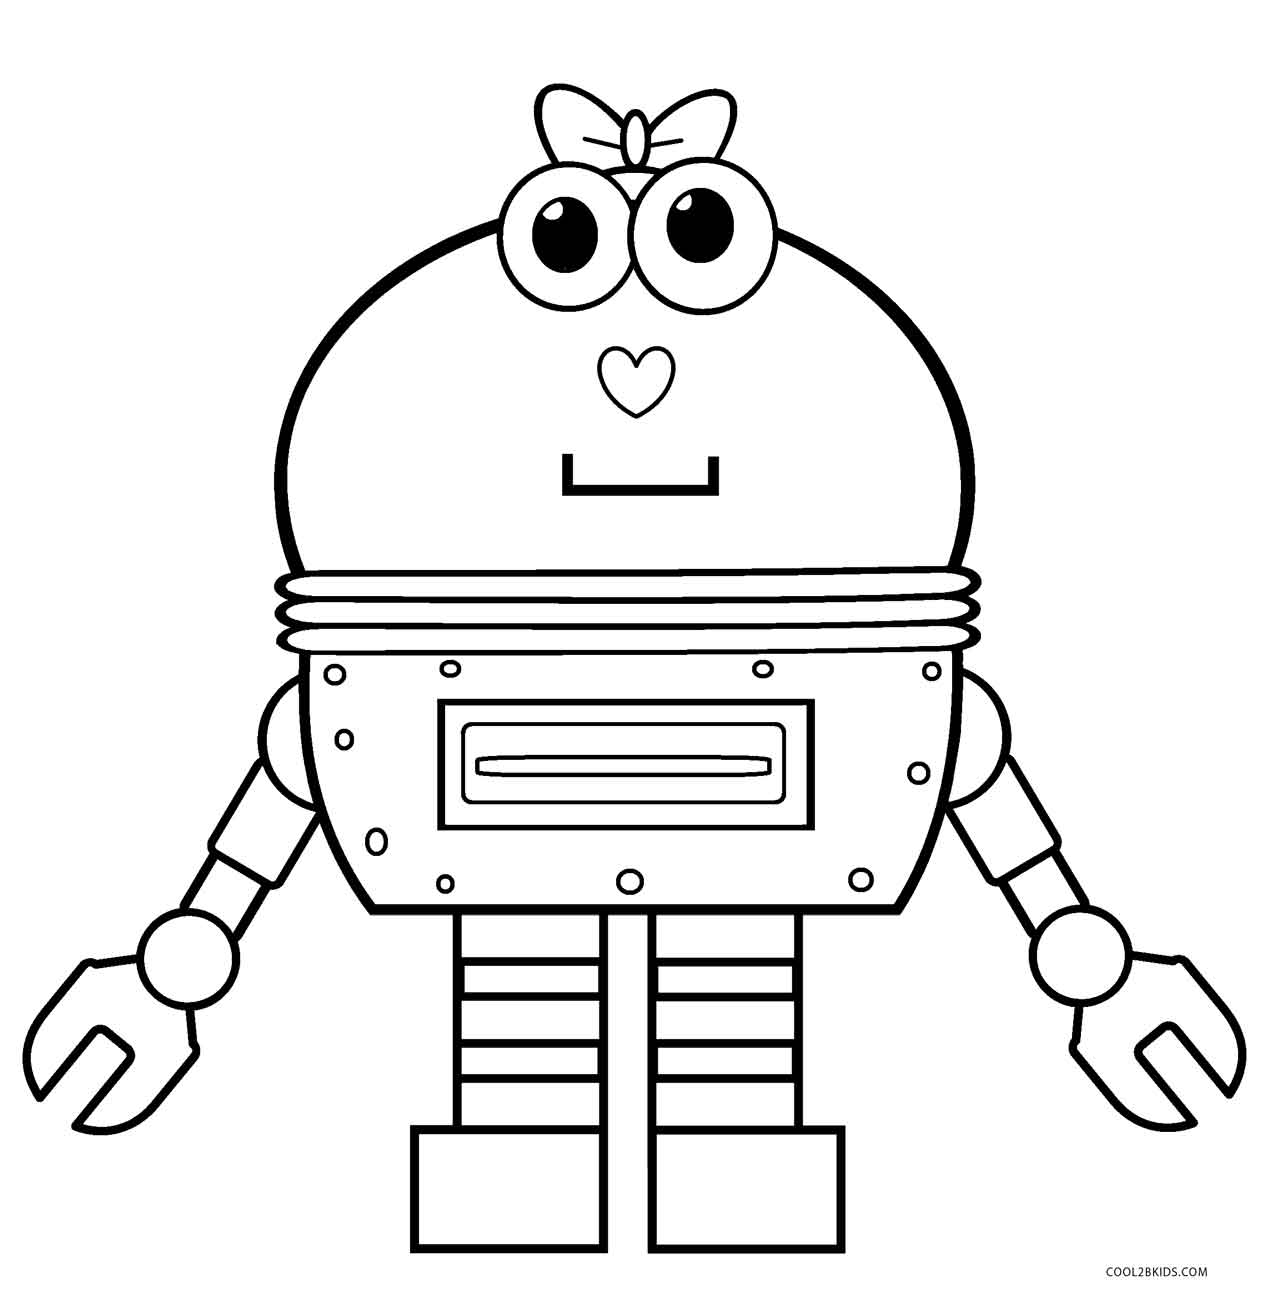 robot pictures to print robot coloring pages for students educative printable robot print to pictures